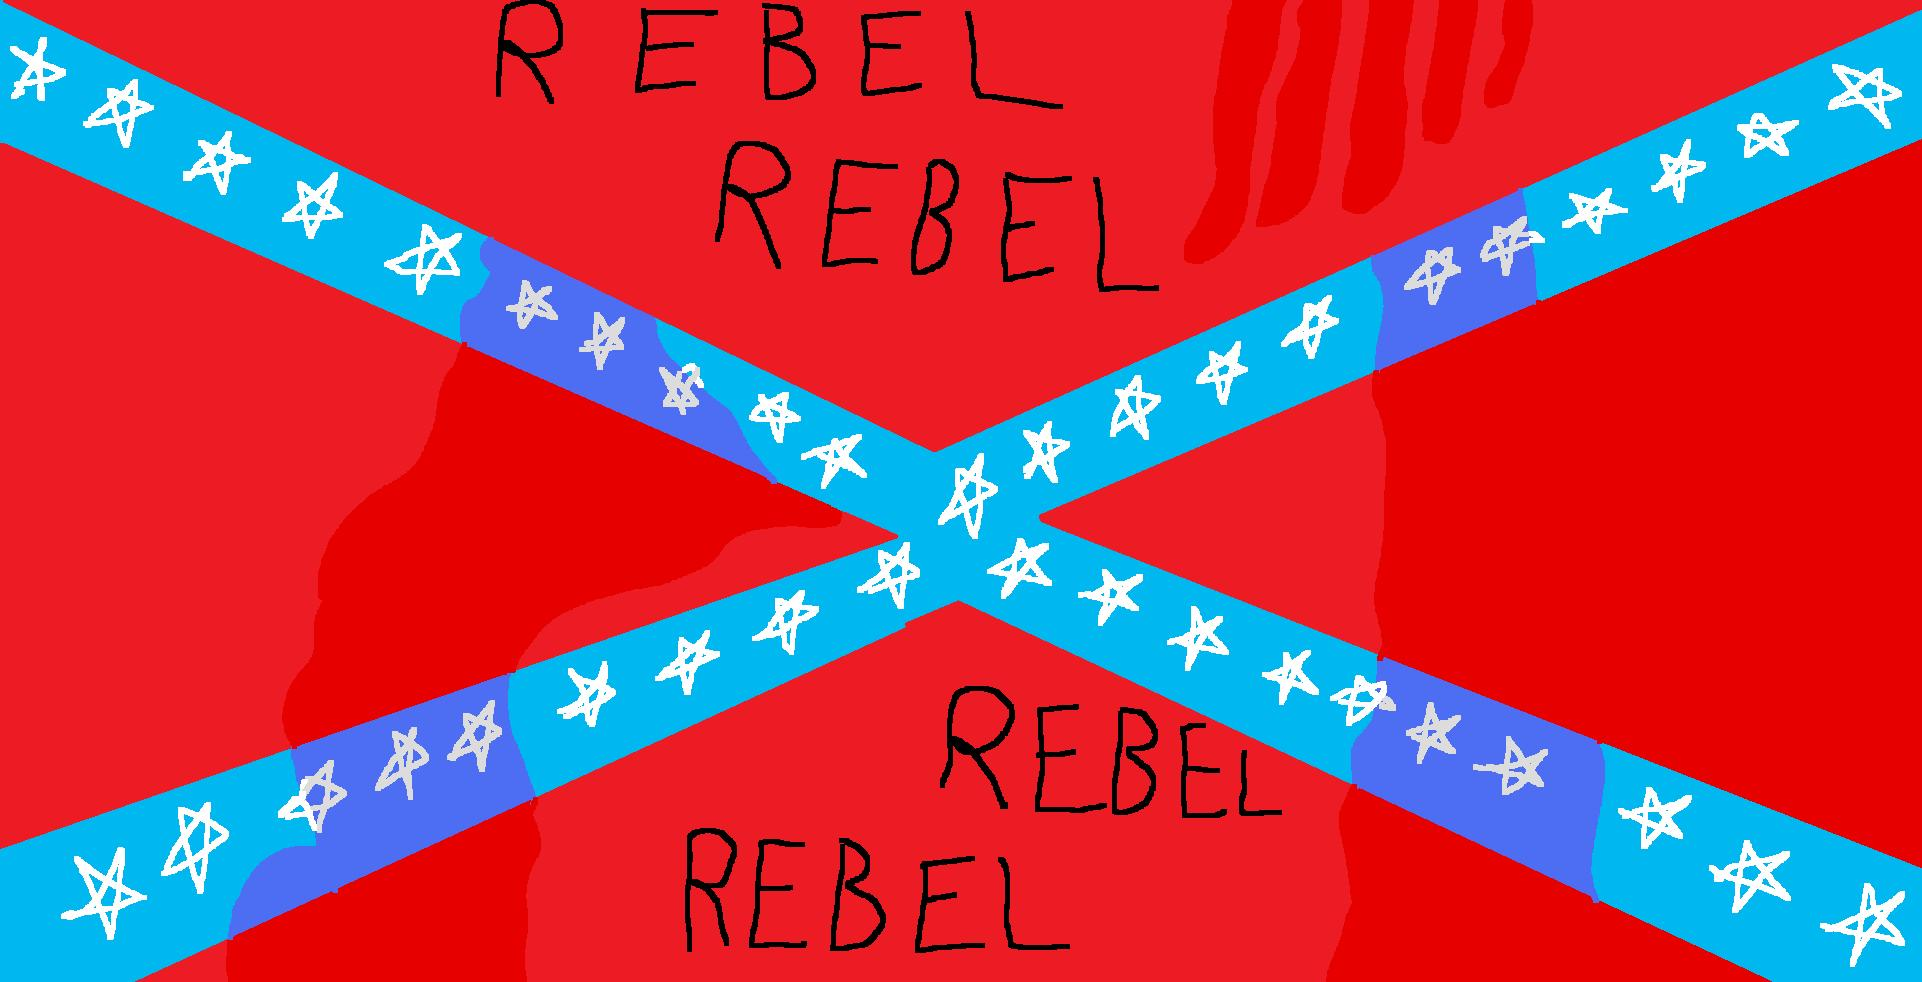 Rebel flag!